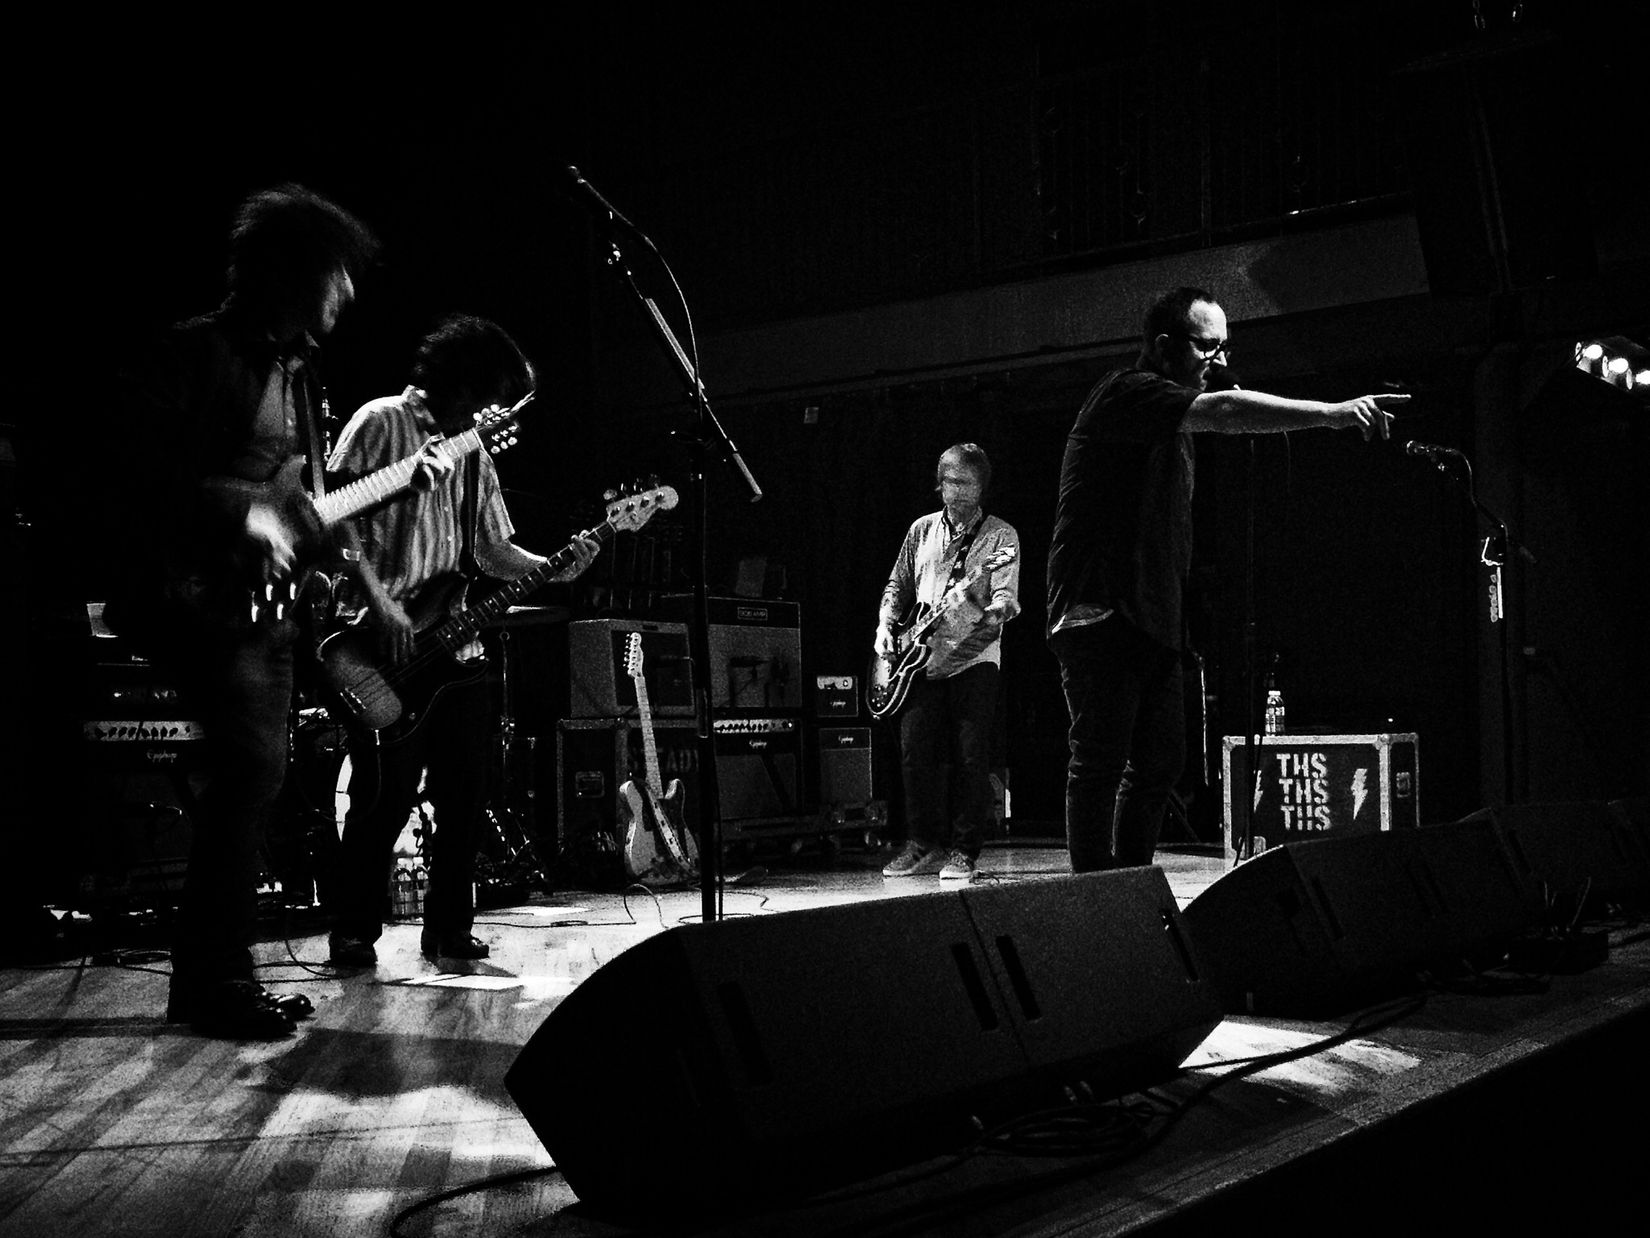 Rock and roll with The Hold Steady! Concert